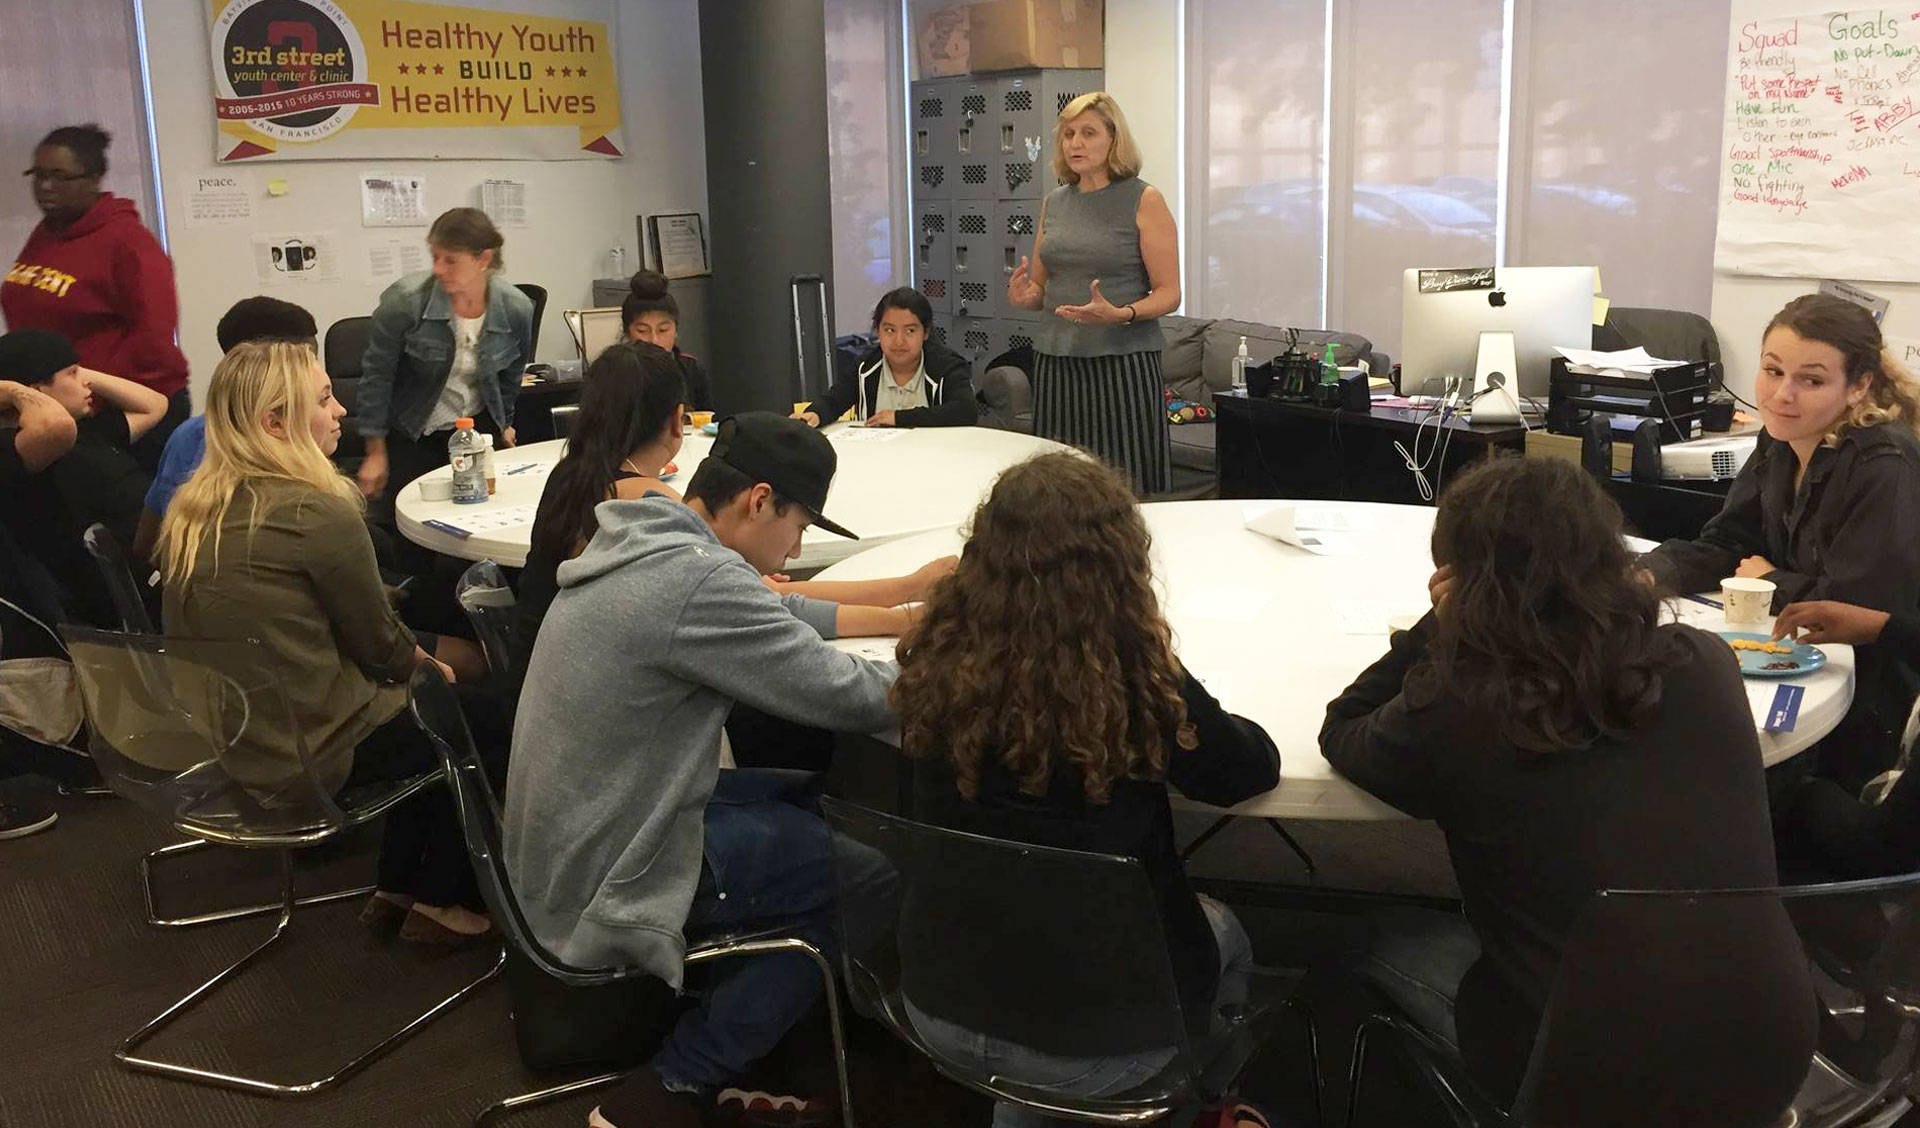 Lisa Thurau of nonprofit Strategies for Youth leads a workshop about juvenile justice at the 3rd Street Youth Center & Clinic in San Francisco's Bayview neighborhood.  Laura Klivans/KQED